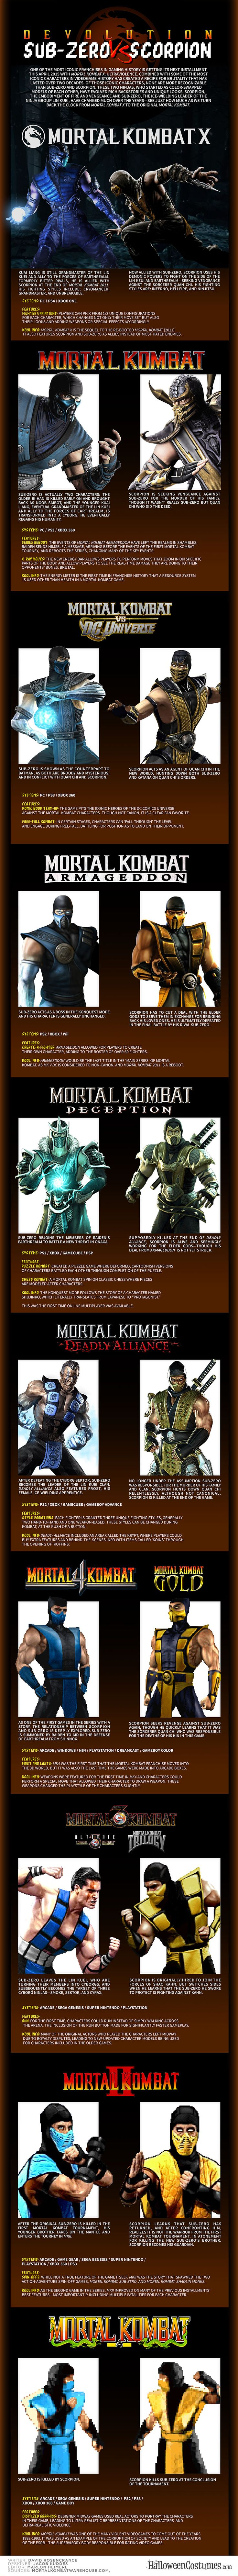 GET OVER HERE - and look at our Mortal Kombat infographic about Scorpion and Sub-Zero, and how they have changed over time!